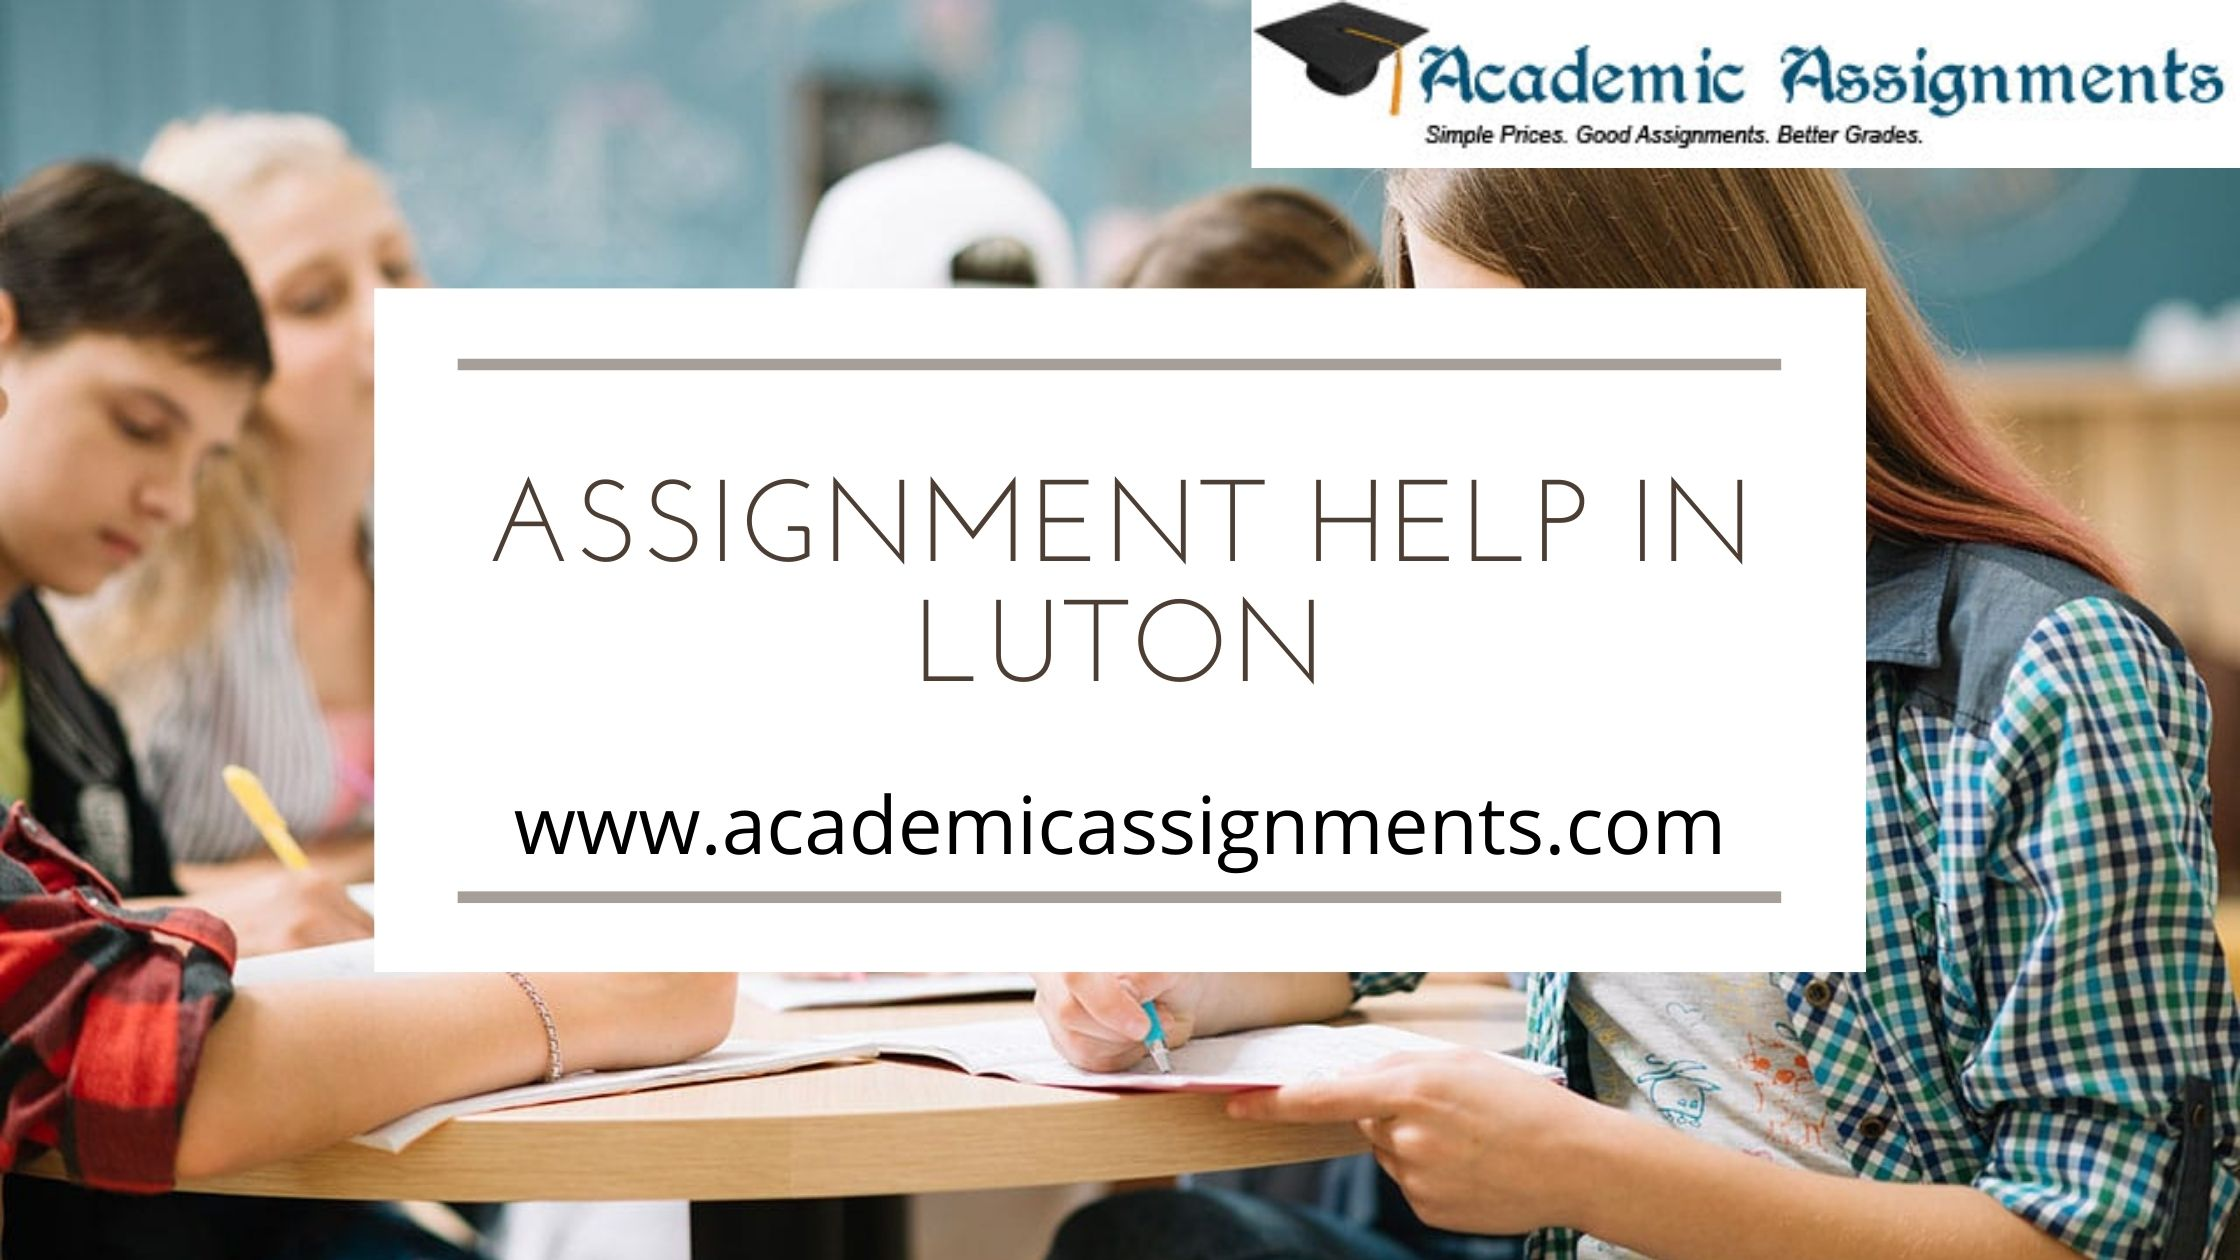 Assignment Help In Luton